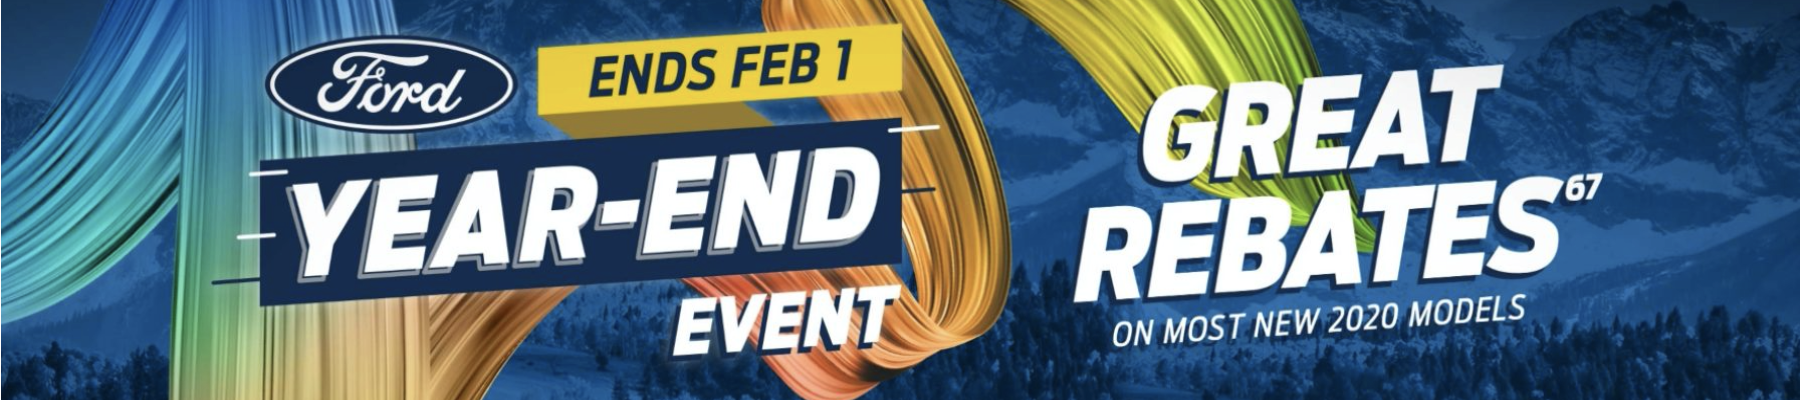 embrun ford year end event